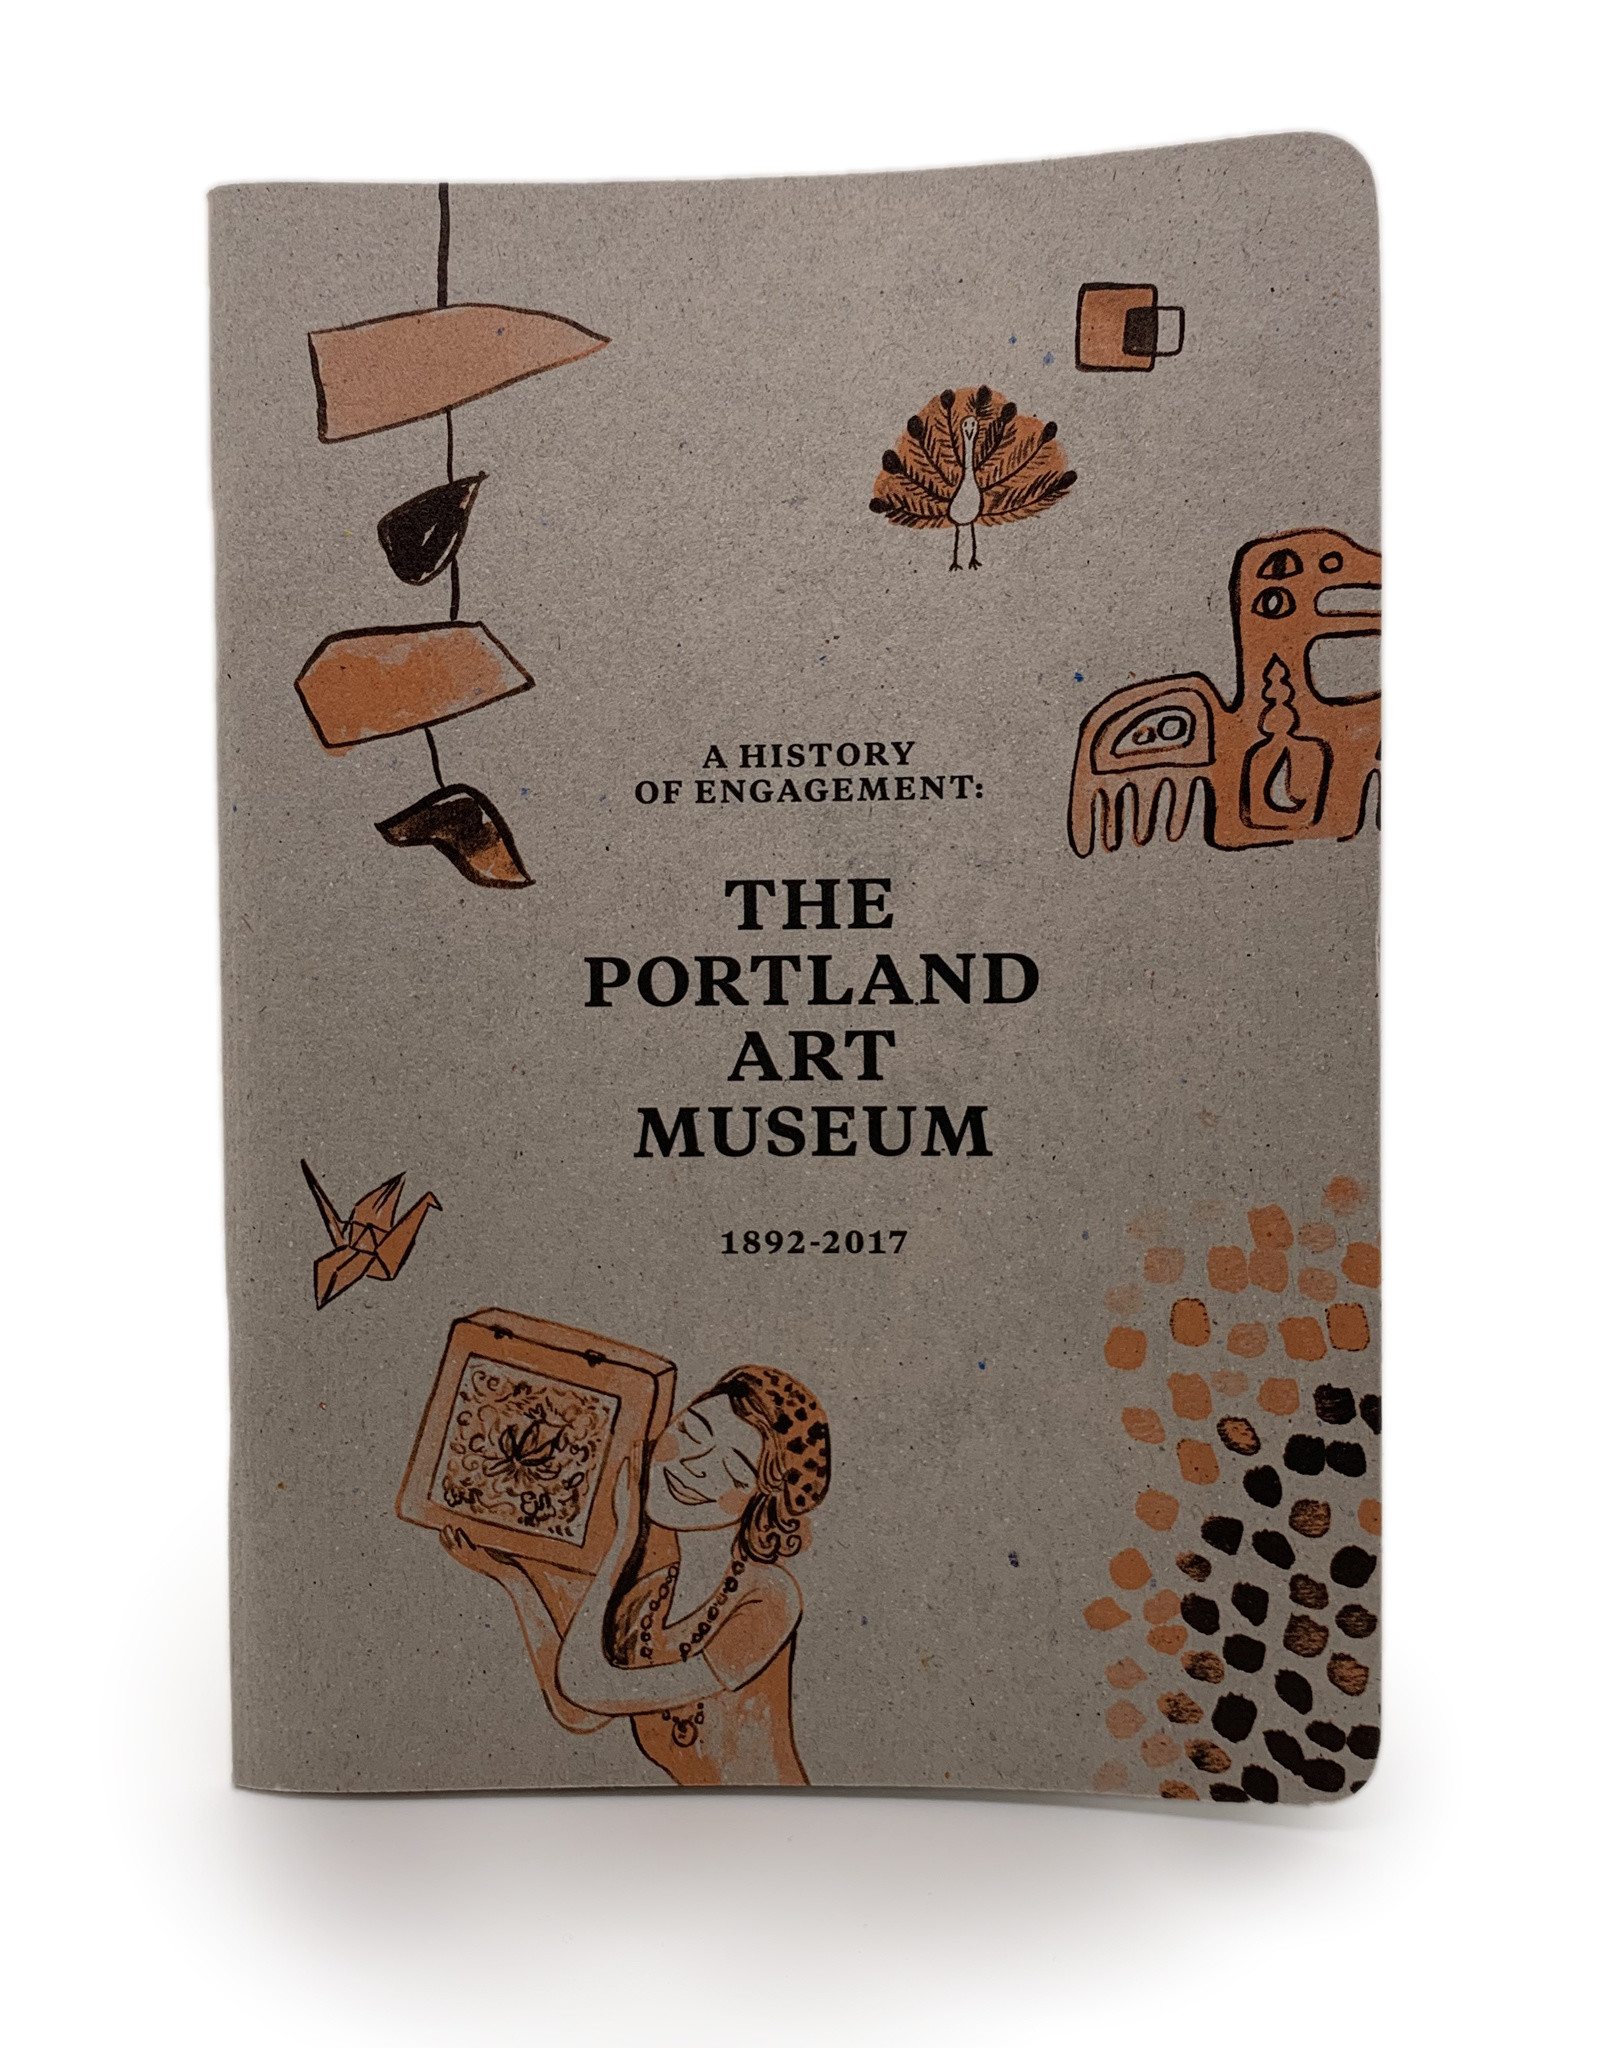 A History of Engagement: The Portland Art Museum